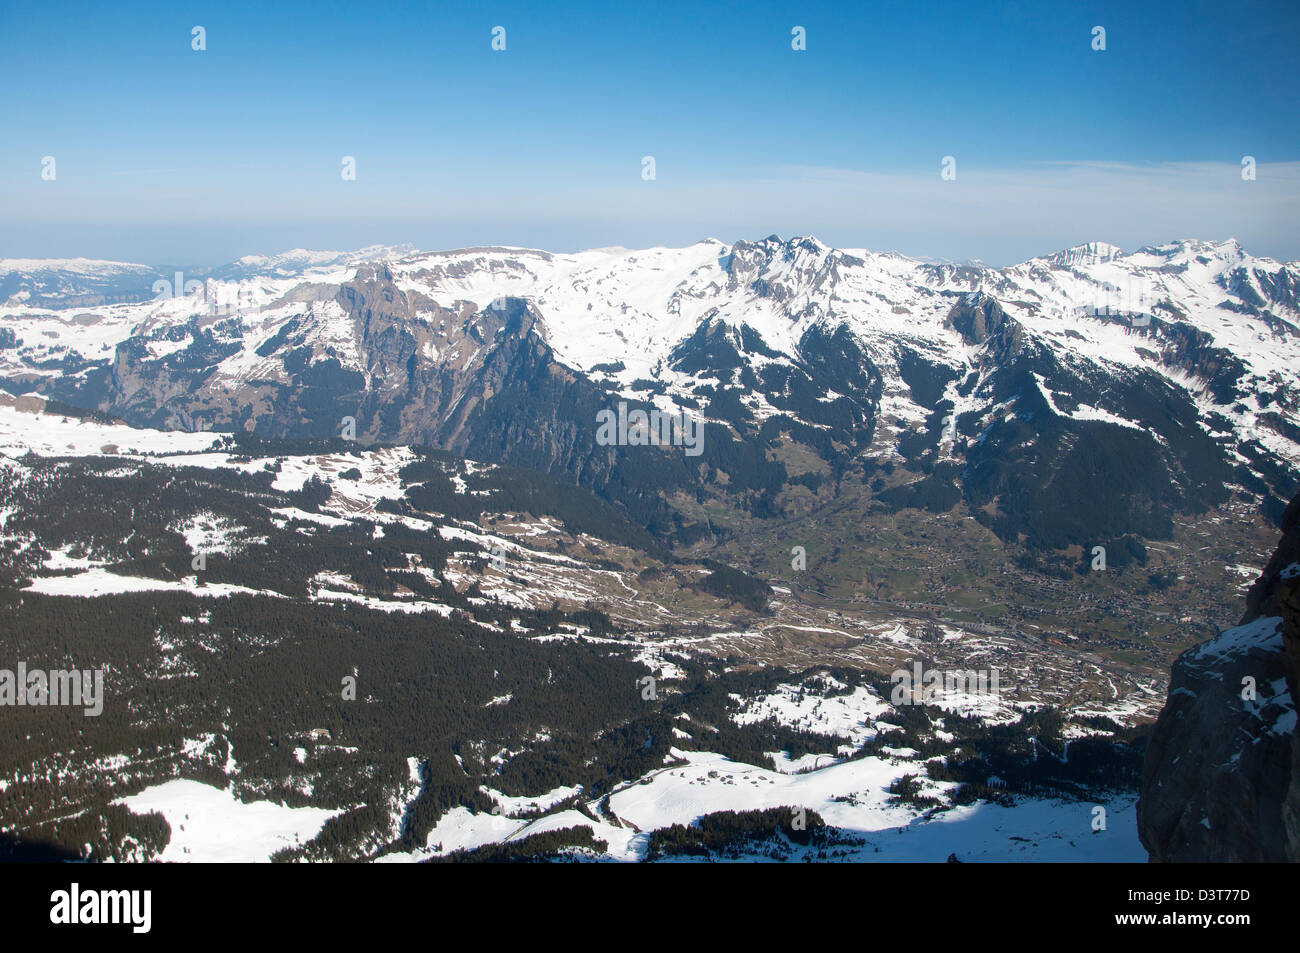 A view of snowcapped Swiss alpine mountain range seen from Eigerwand tunnel station look-out point - Stock Image